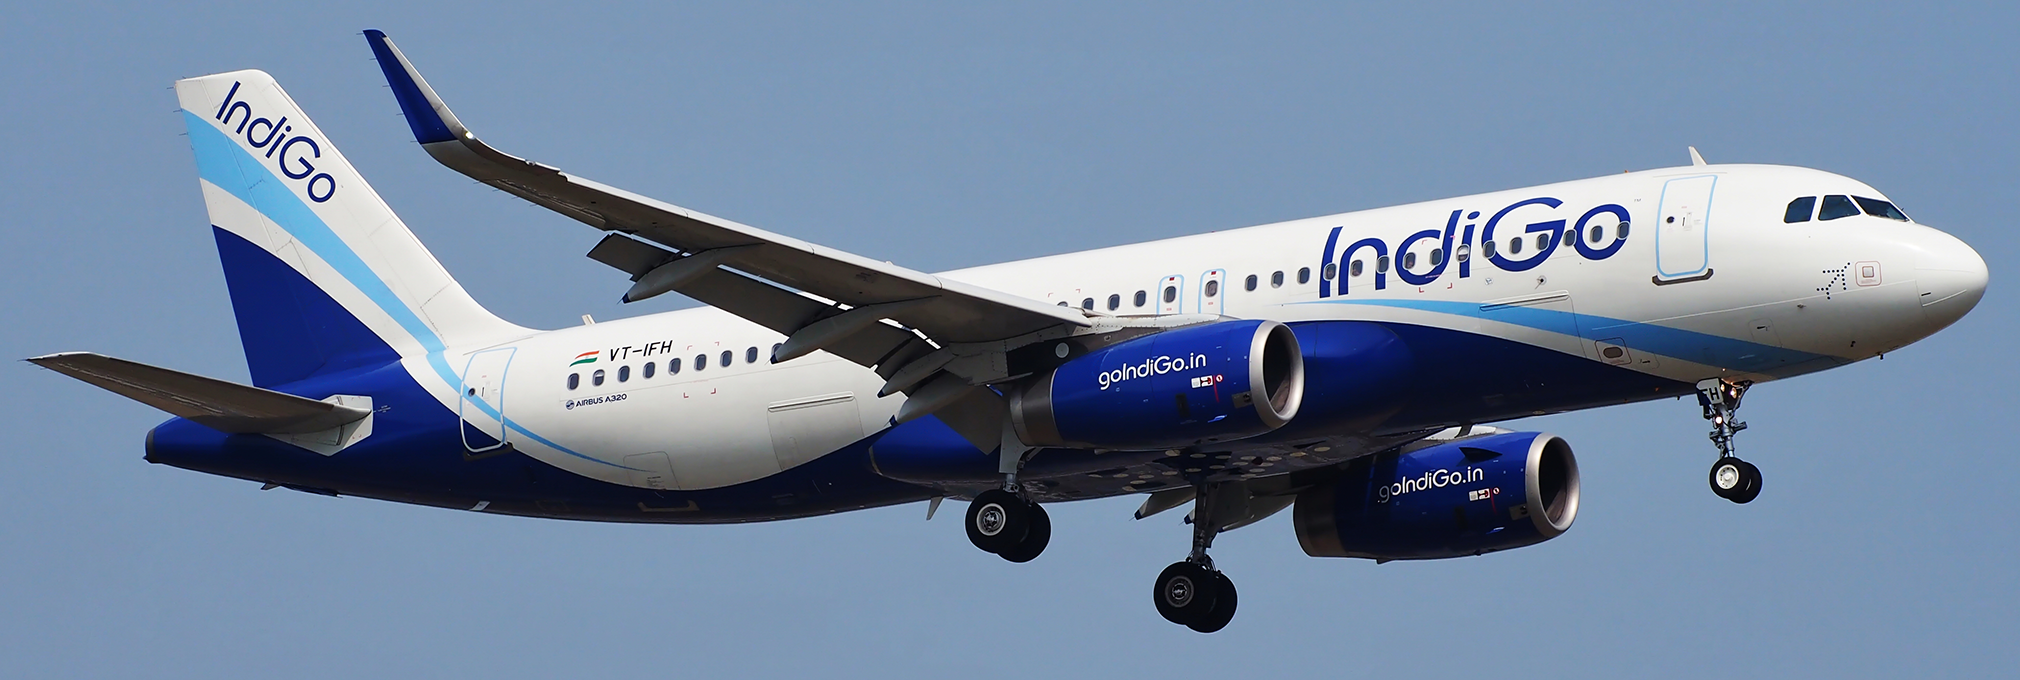 wining strategy of indigo airlines New delhi/mumbai: india's largest airline indigo will look to strengthen  operational areas and customer interface ahead of scaling up.